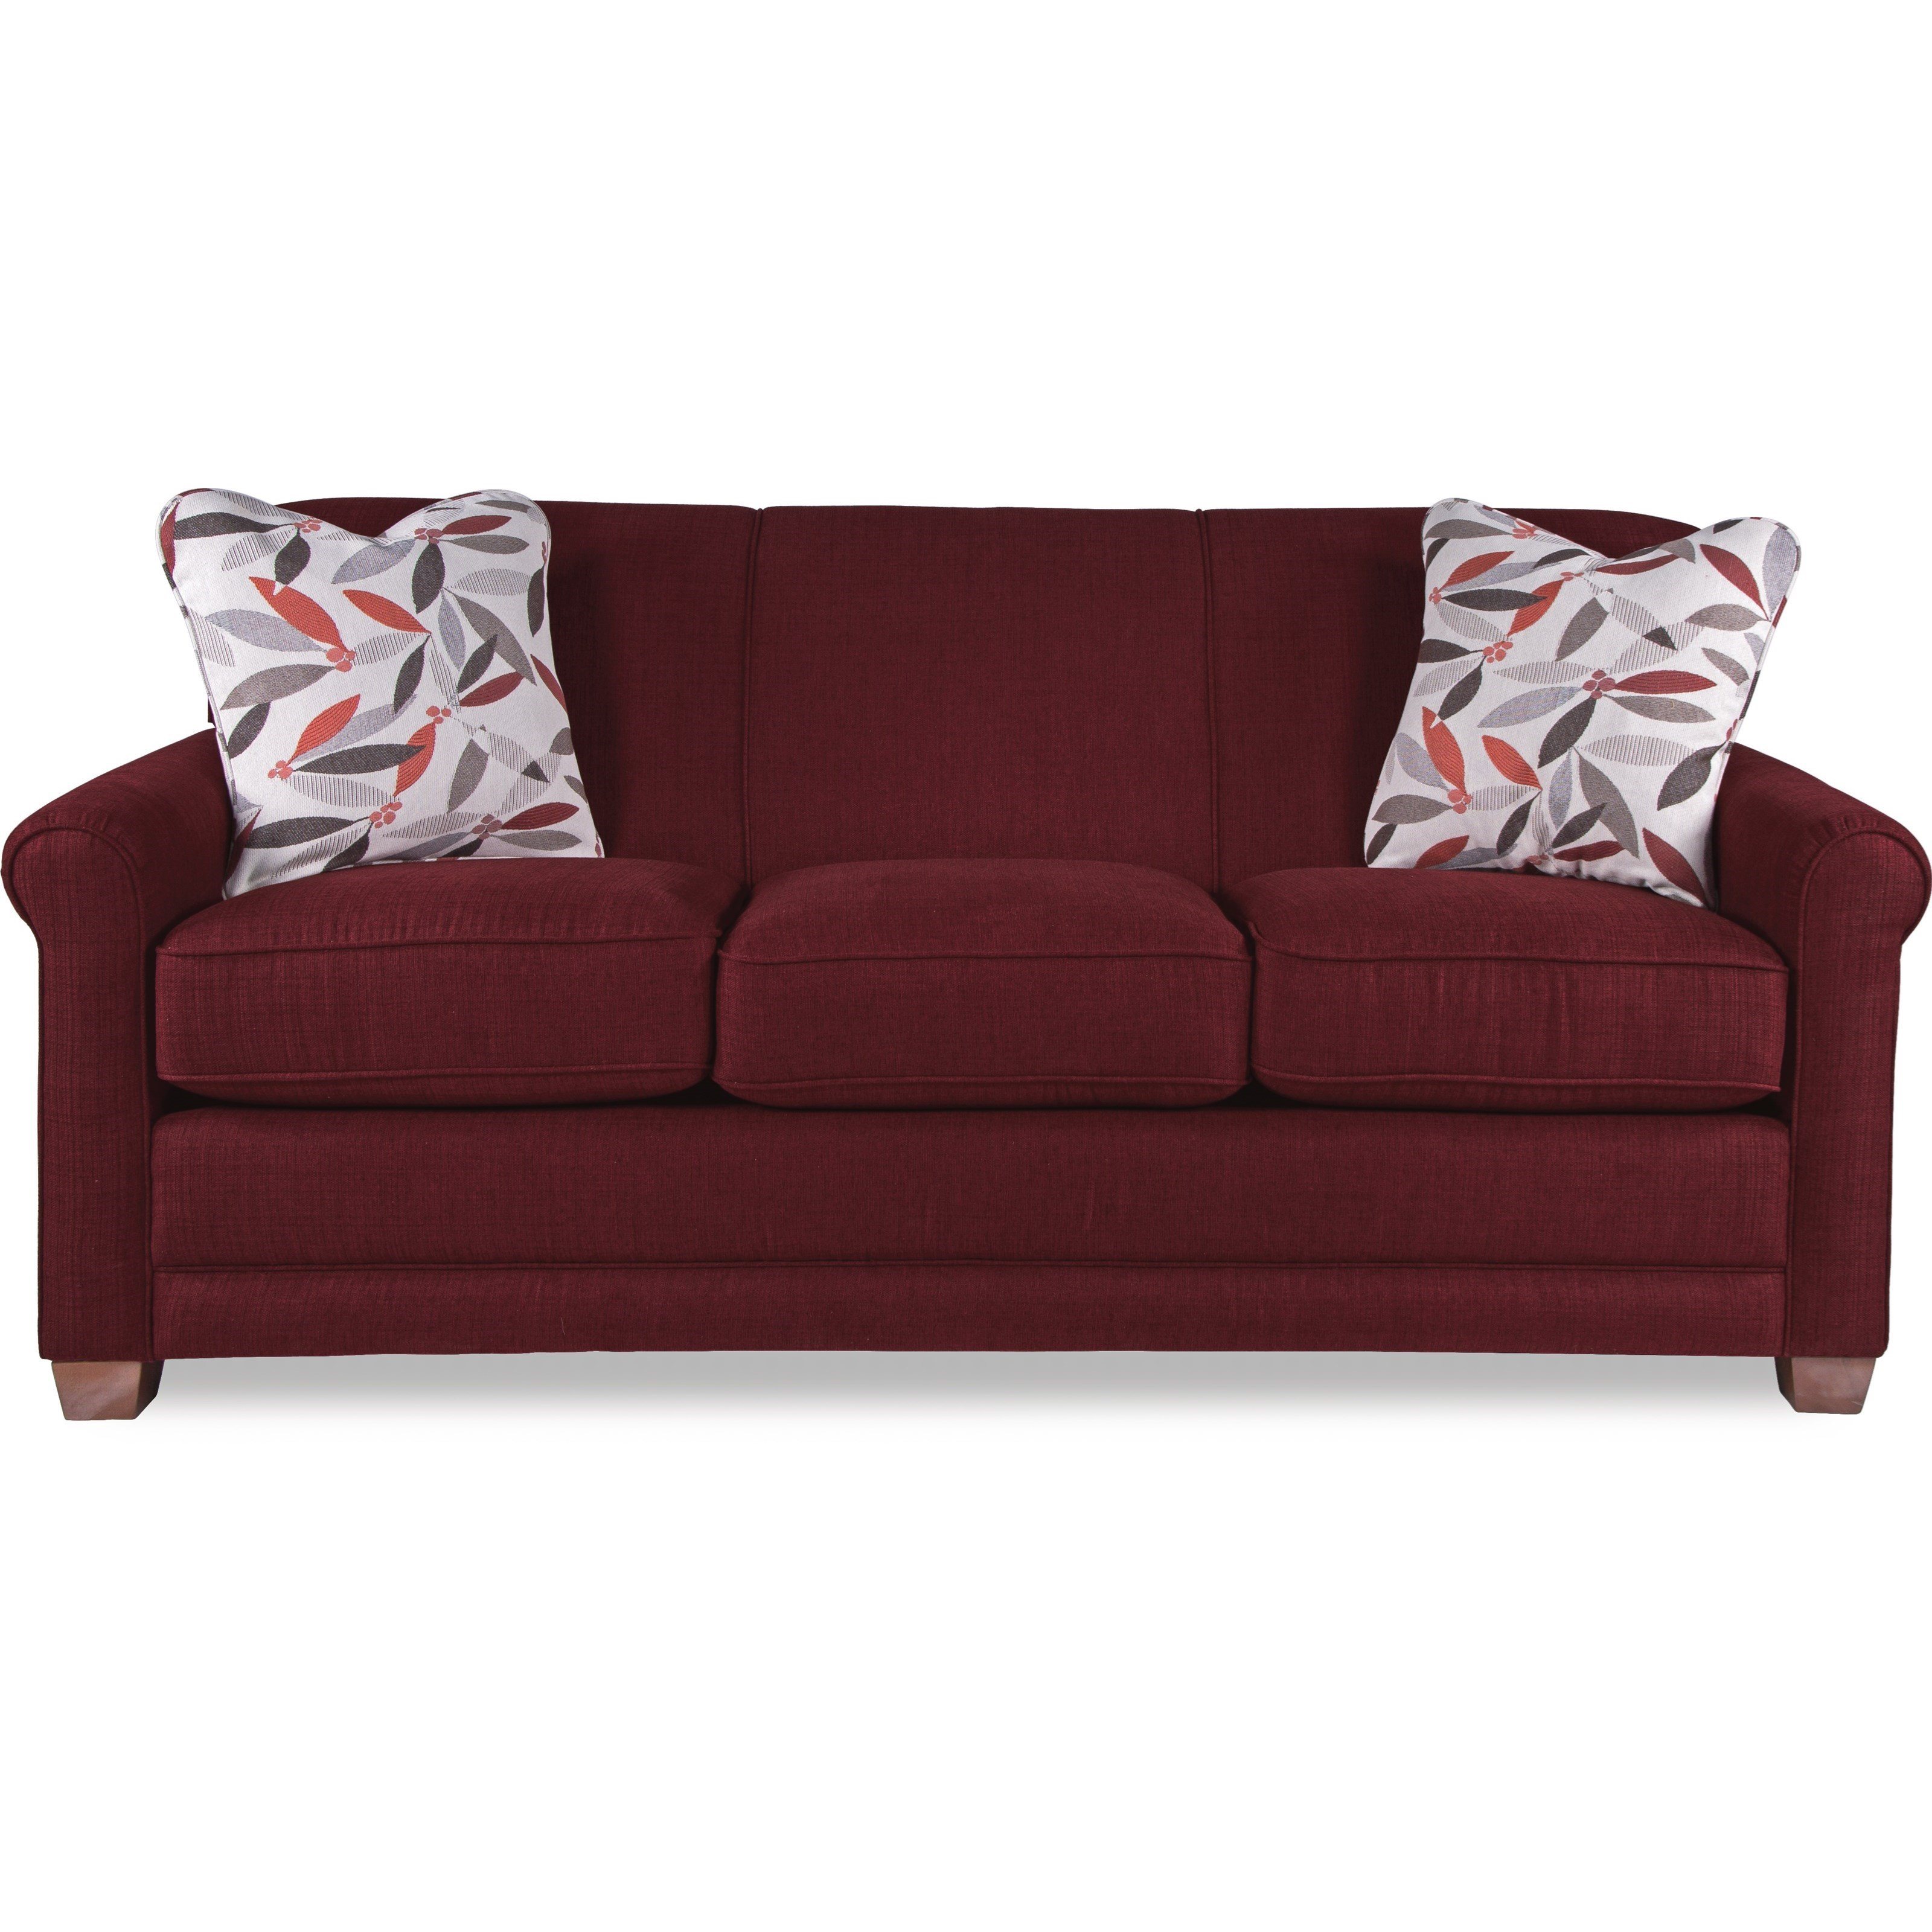 Amanda Queen Sleeper Sofa by La-Z-Boy at Bennett's Furniture and Mattresses